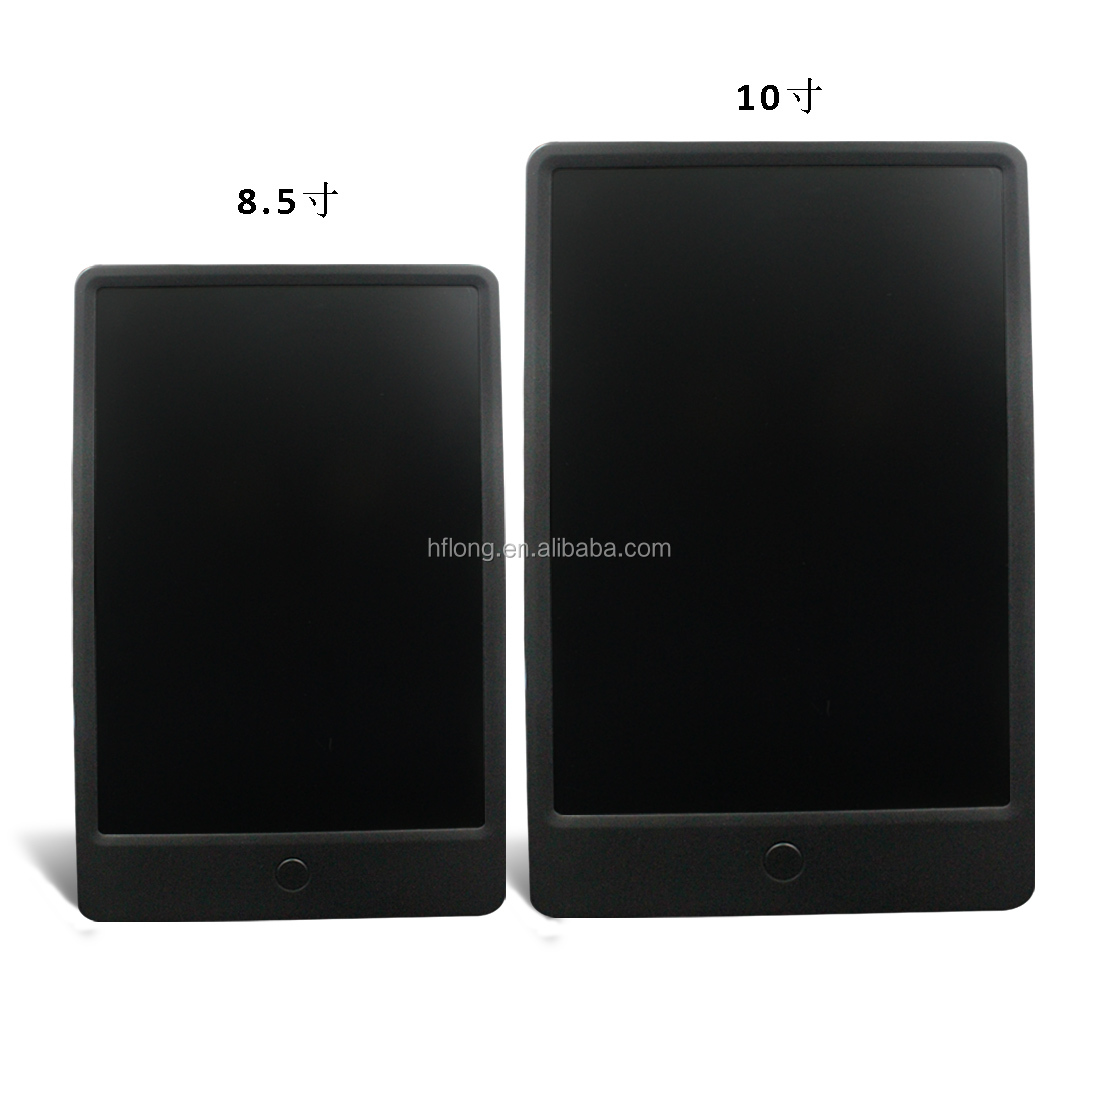 10 inch Lcd Writing Tablet Erasable Electric Writing Board